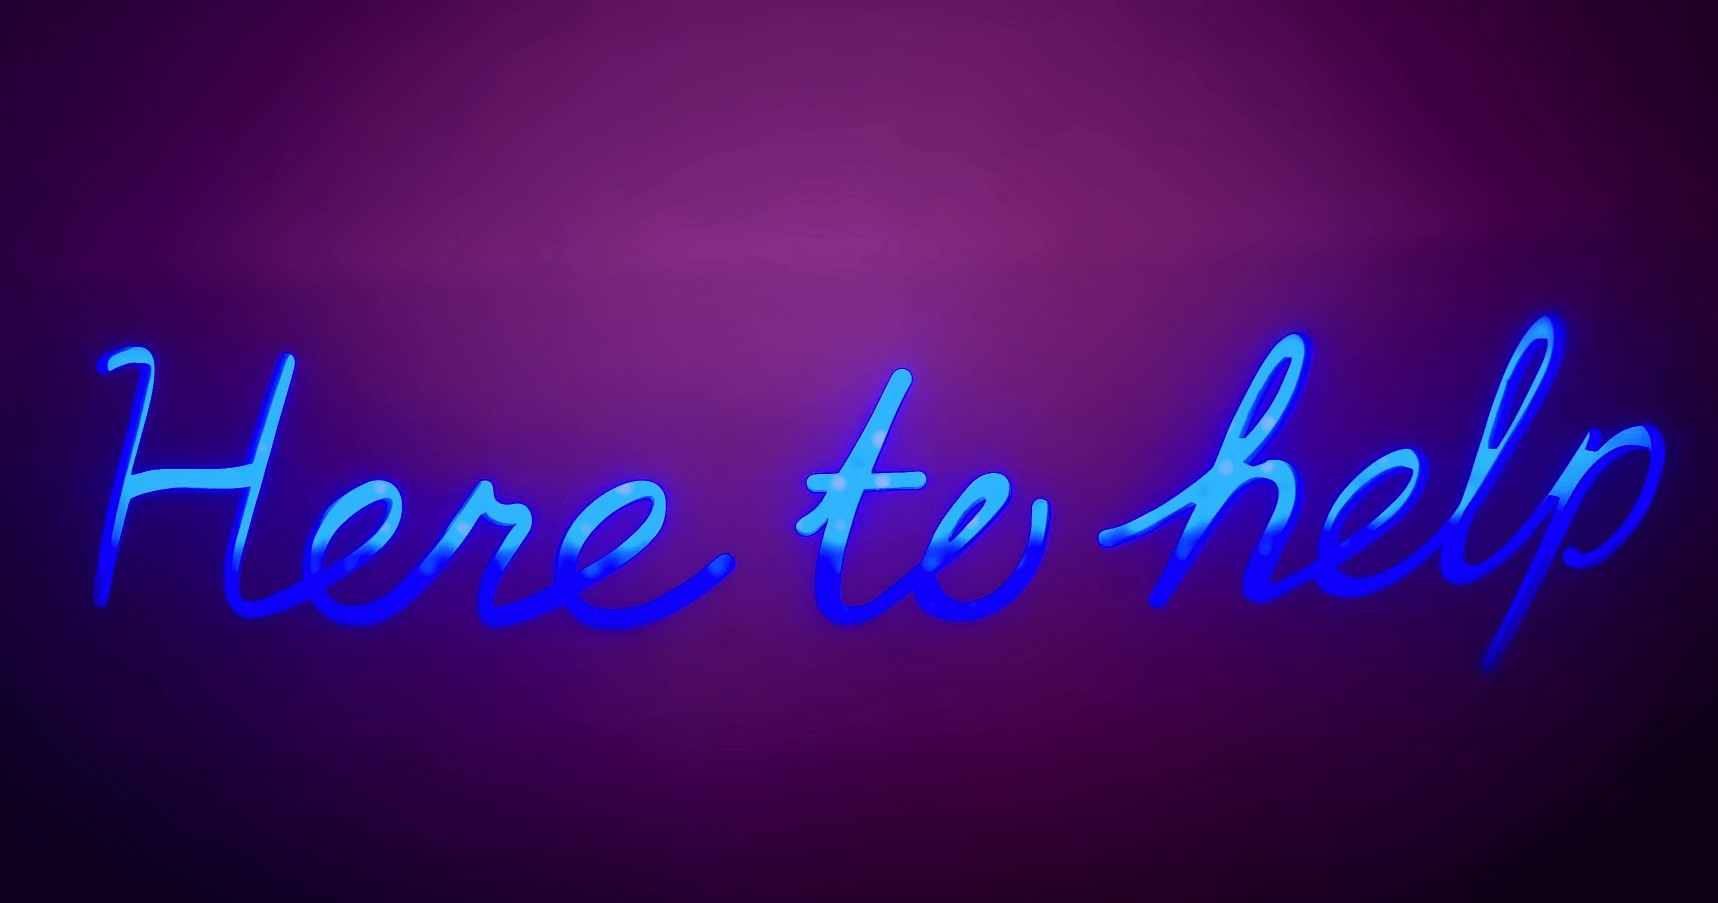 neon-sign-here-to-help_t20_rr447z.jpg